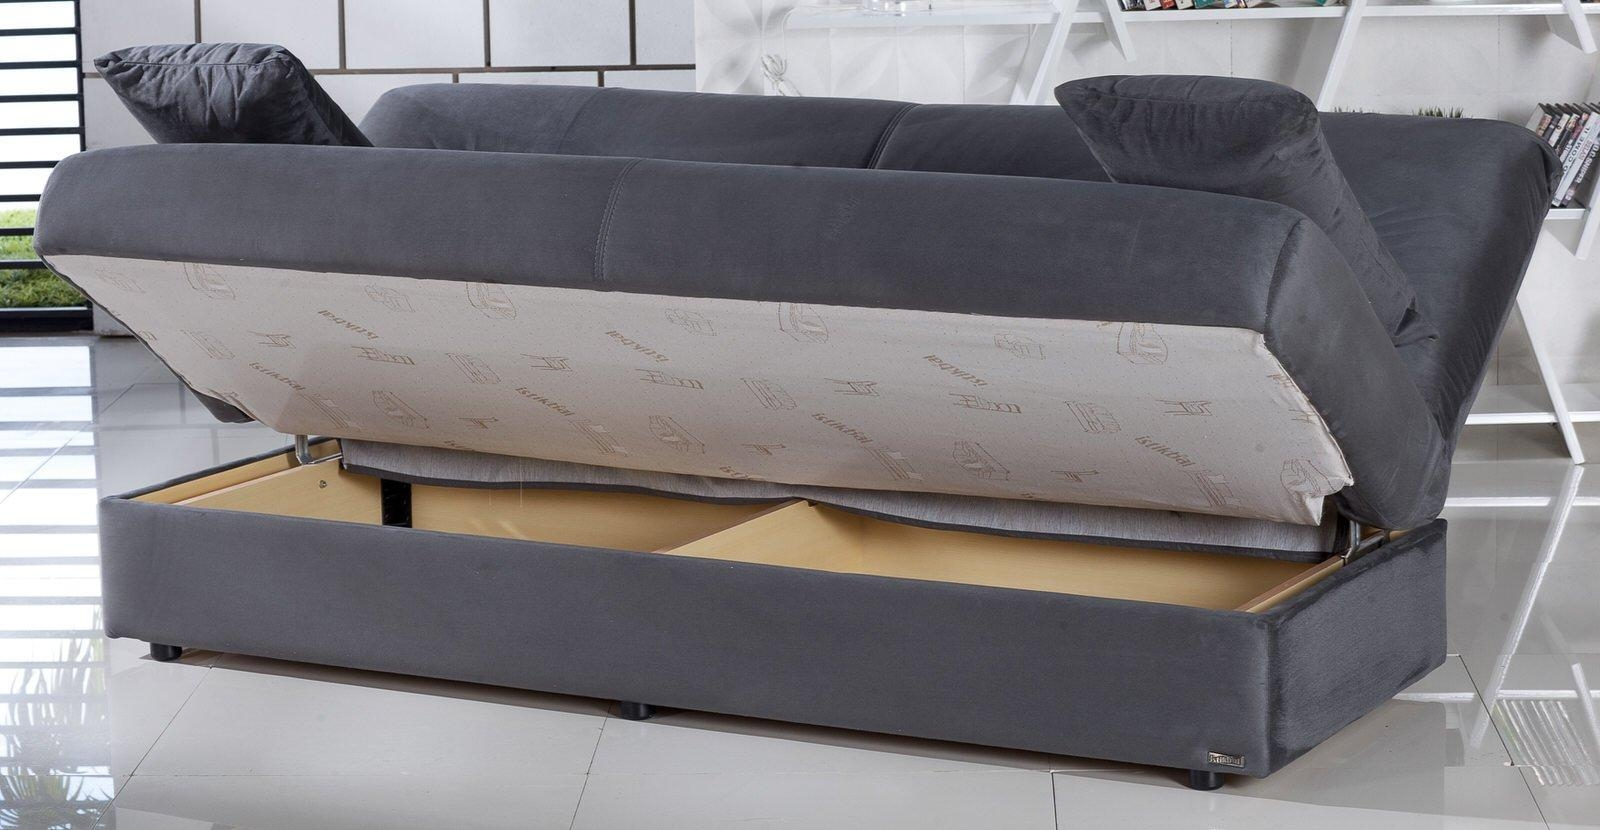 Sofa Convertible Bed With Storage Serta Traditional German Made Intended For Sofa Convertibles (View 14 of 20)